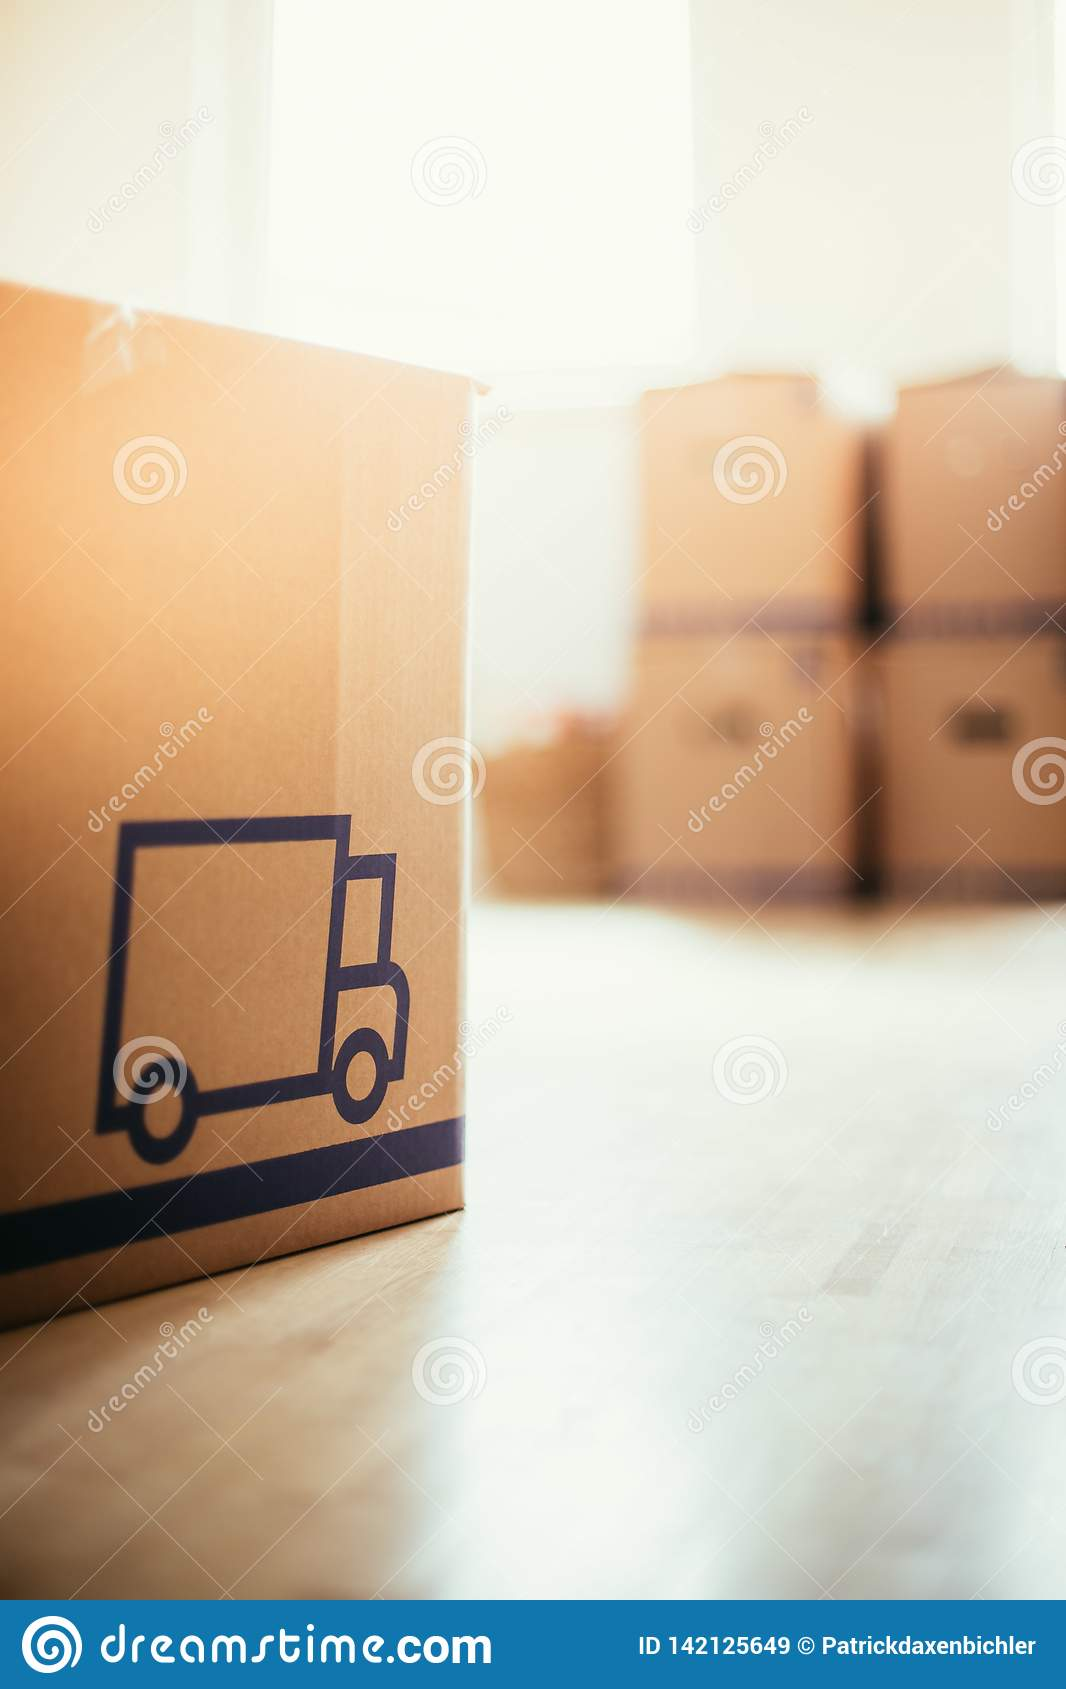 Move Cardboard Boxes For Moving Into A New Clean And Bright Home Stock Image Image Of Floor Investment 142125649